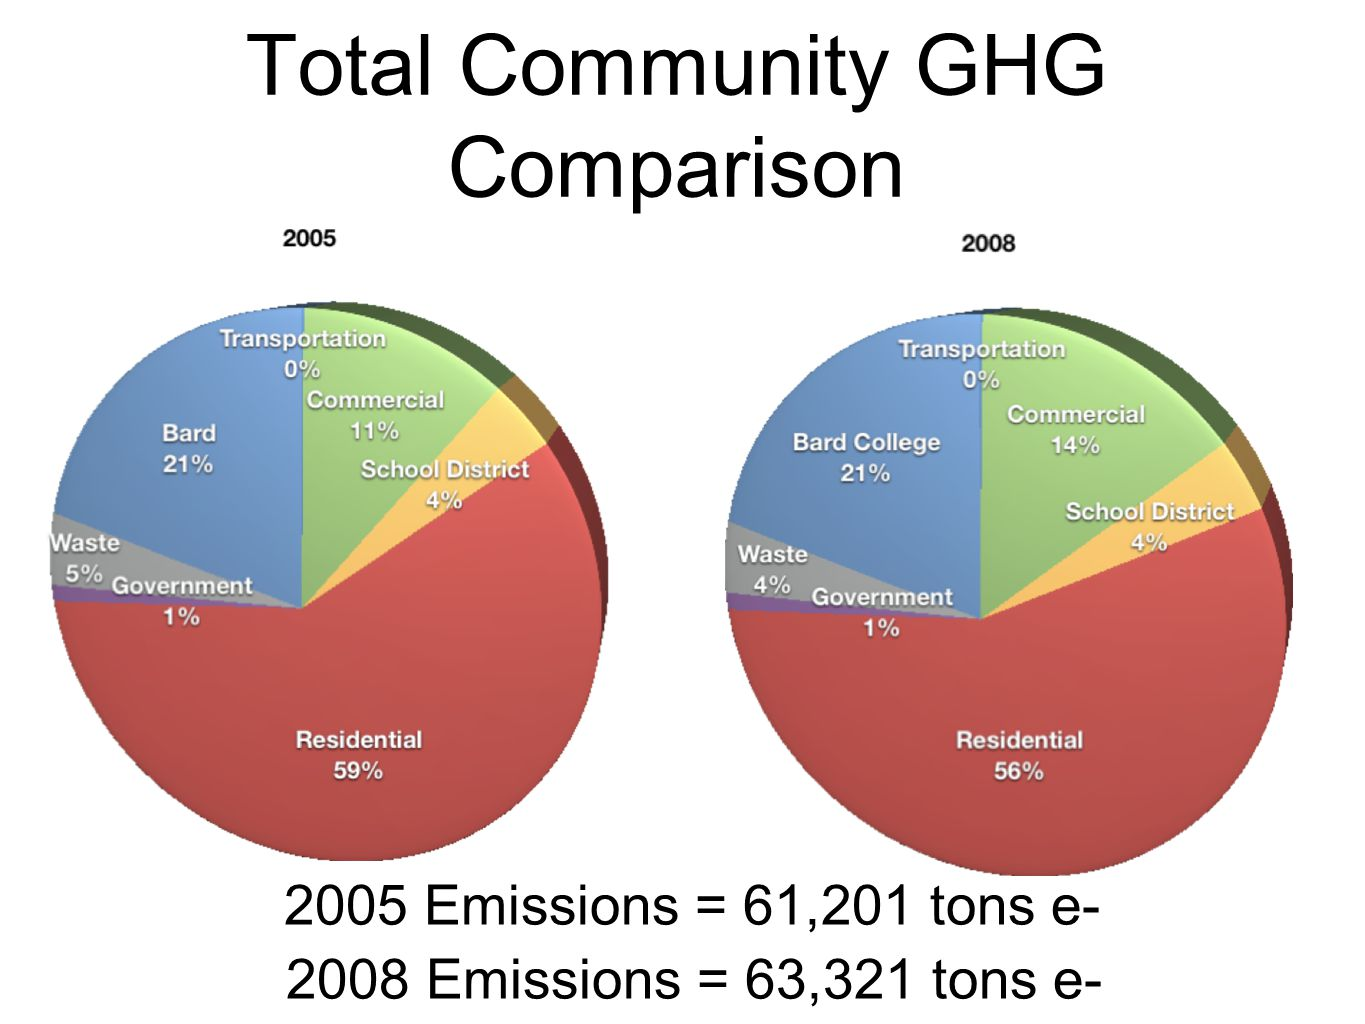 Total Community GHG Comparison 2008 Emissions = 63,321 tons e- 2005 Emissions = 61,201 tons e-